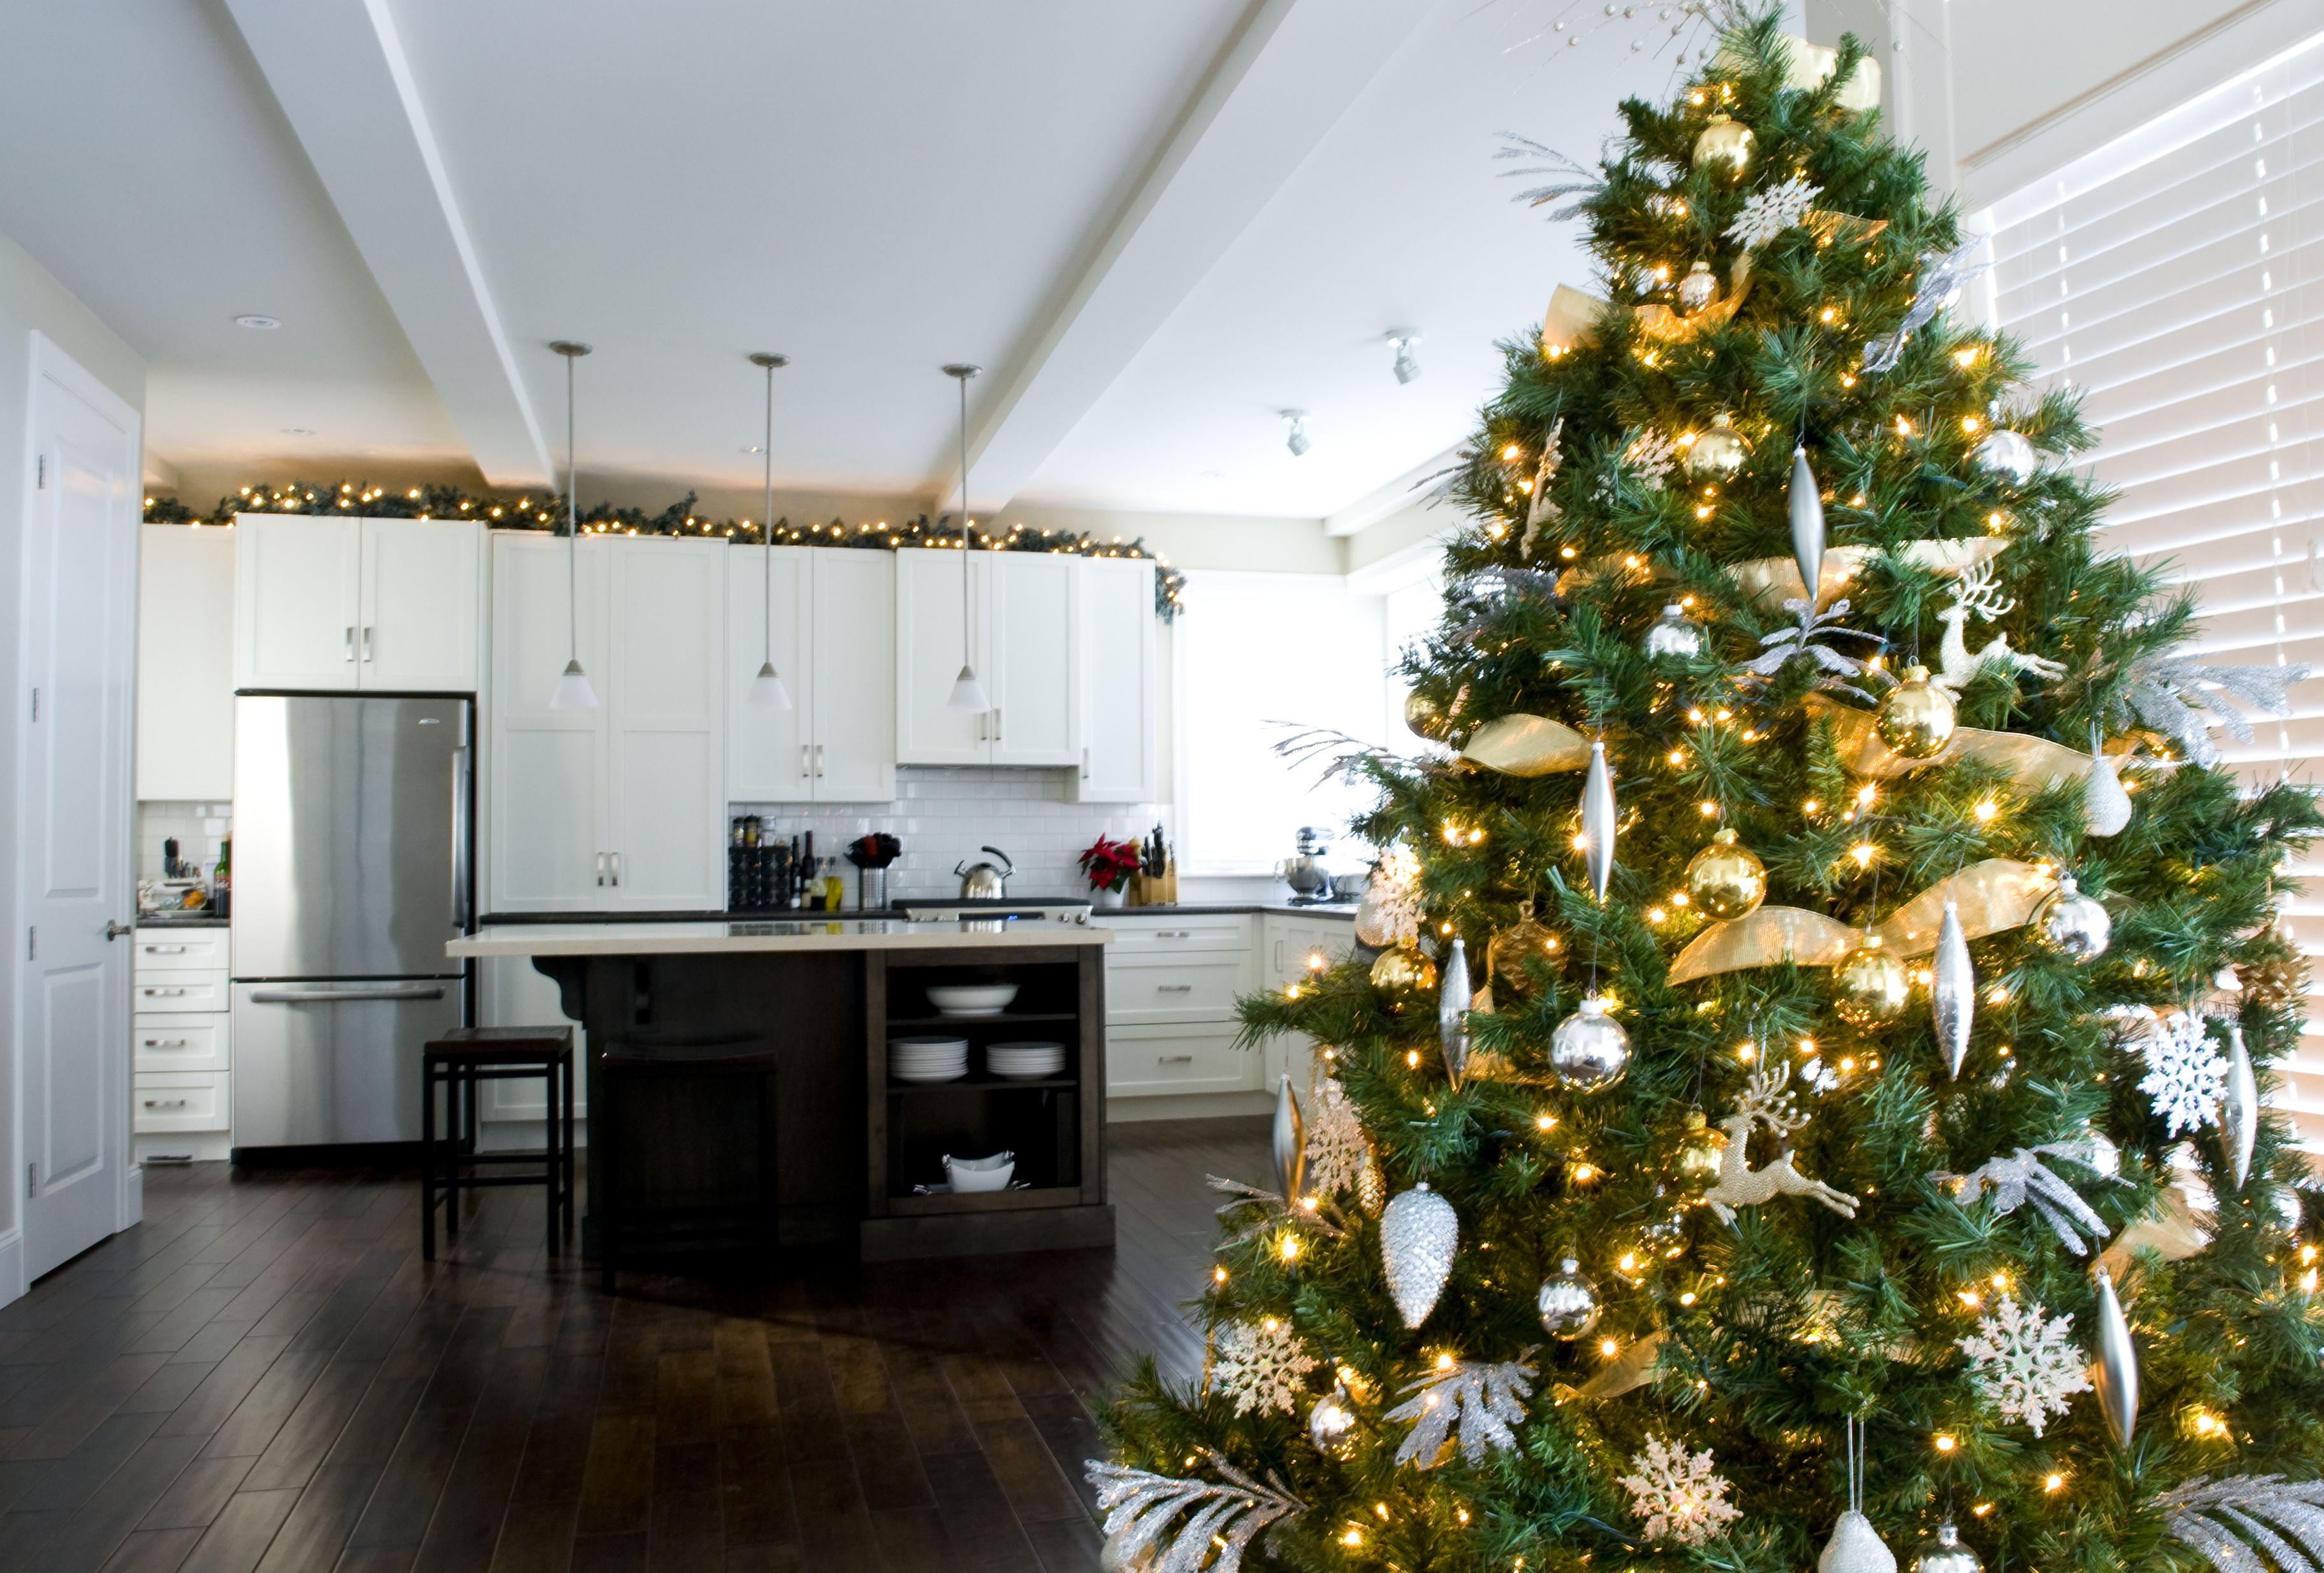 Christmas House Decor.20 Christmas Kitchen Decor Ideas How To Decorate Your